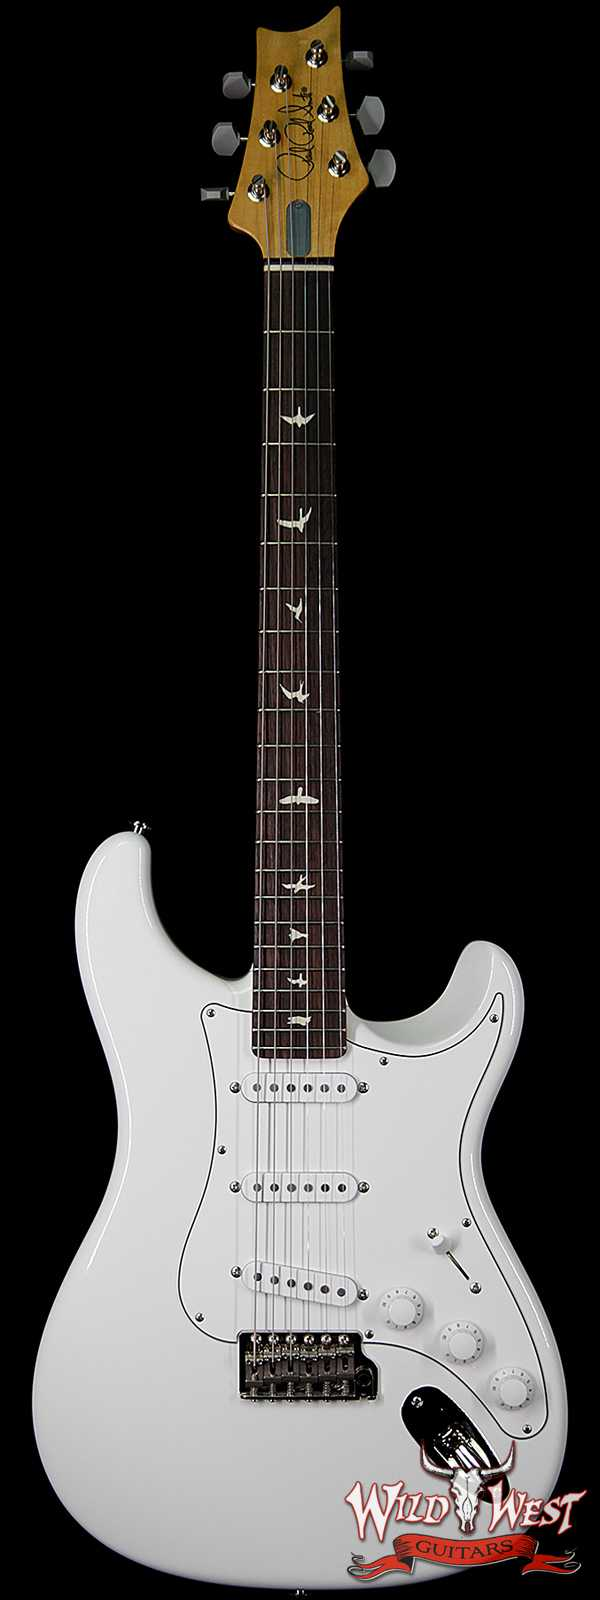 PRS John Mayer Signature Model Silver Sky Maple Neck Rosewood Fingerboard Frost White